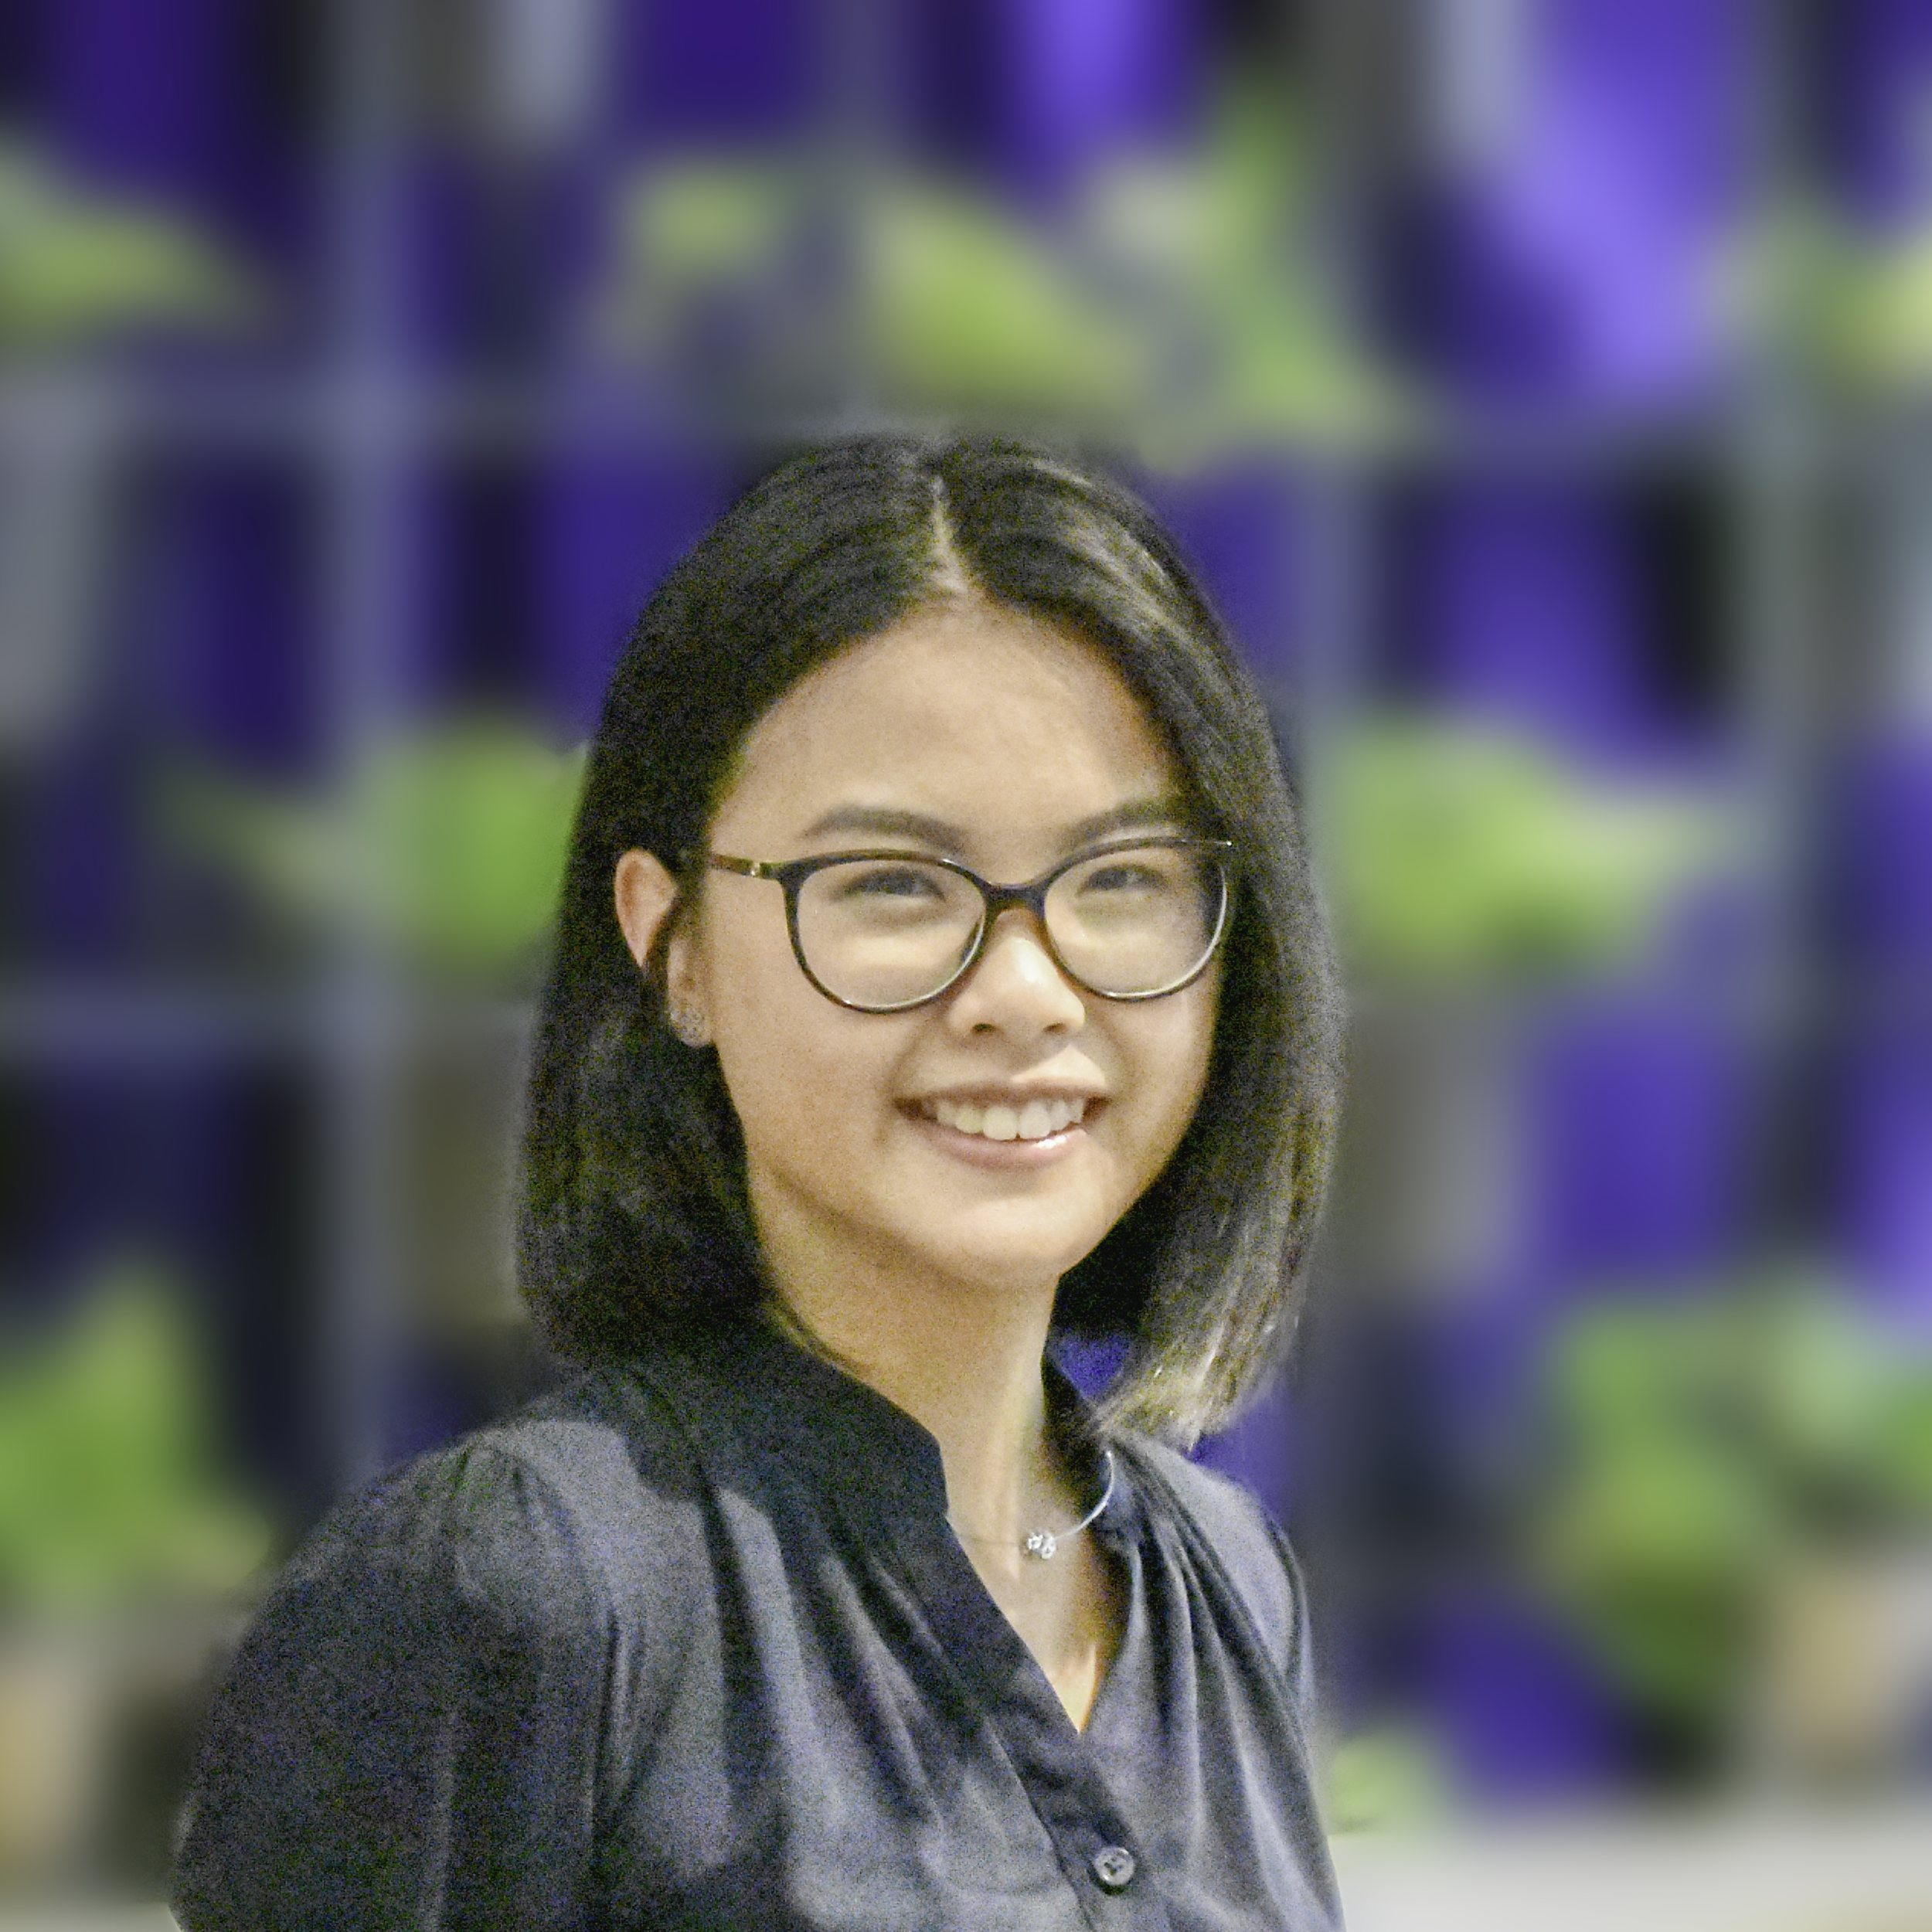 Ivy Shi | Executive Officer (Public Interest Careers)   E: publicinterestcareers@muls.org